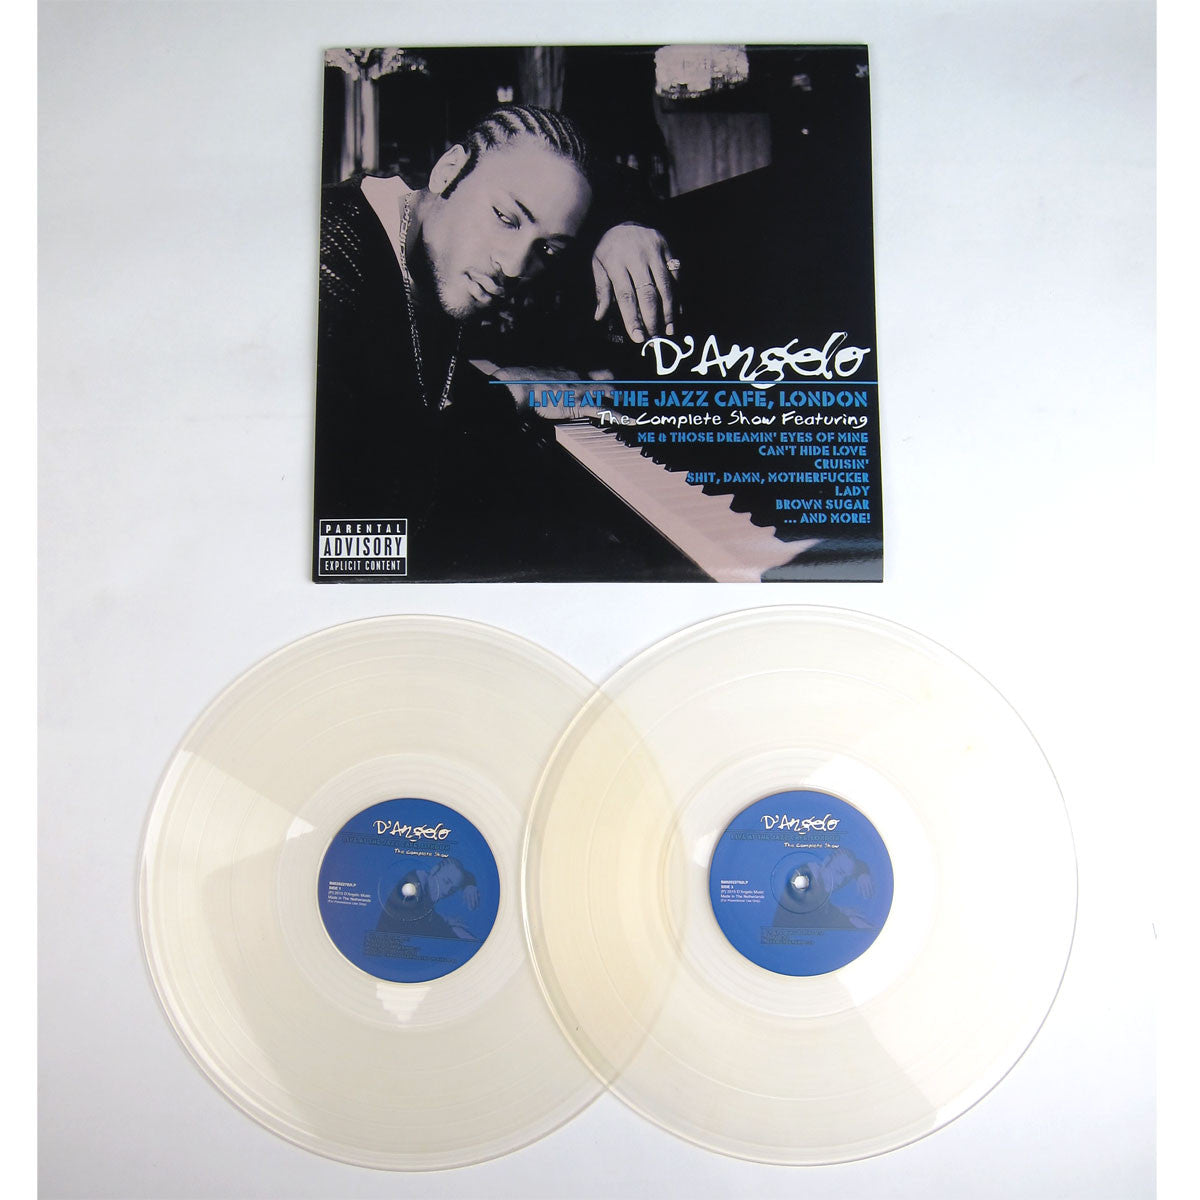 D'Angelo: Live At The Jazz Cafe, London (Colored Vinyl) Vinyl 2LP detail